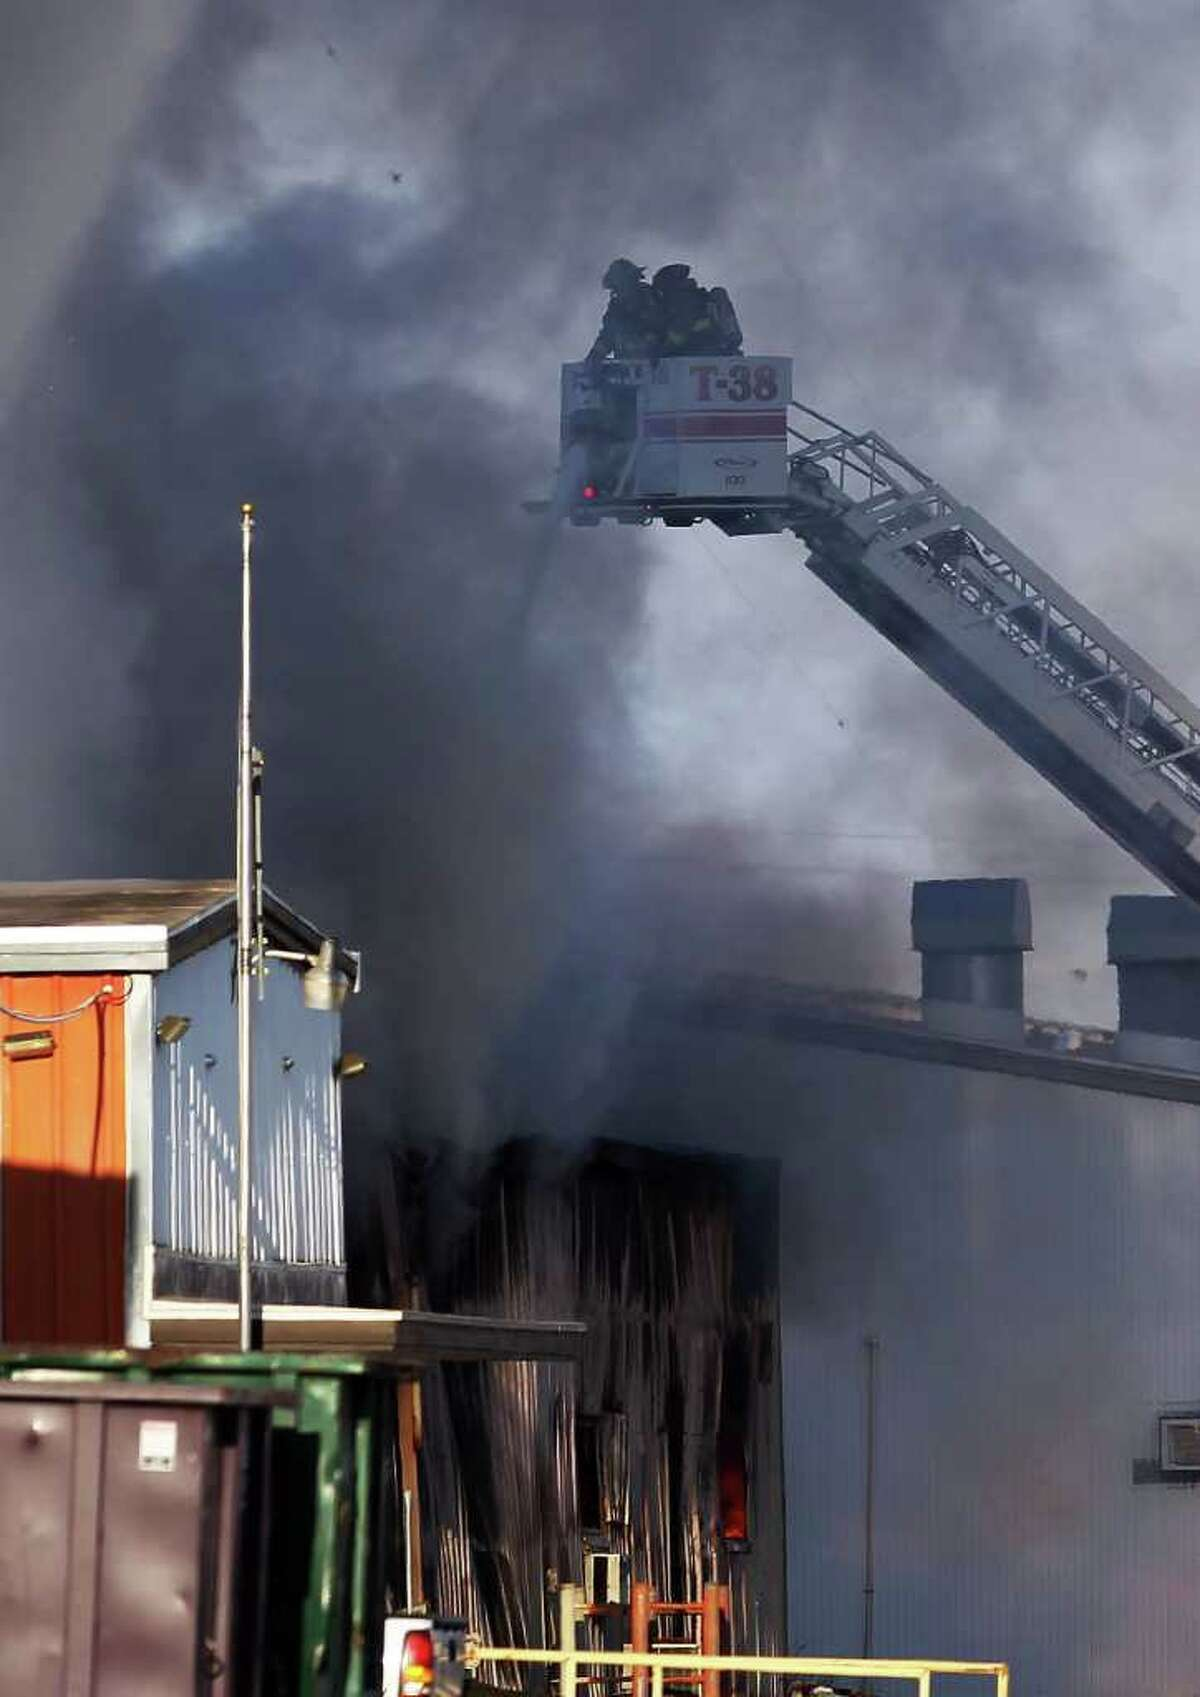 Firefighters fight a blaze at a warehouse near the intersection of Loop 410 and Perrin Beitel Road near the airport on Tuesday, Sept. 6, 2011. The intersection and several blocks were evacuated due to fumes emitted from the fire. Over 30 units were called to the scene to work the fire. Kin Man Hui/kmhui@express-news.net